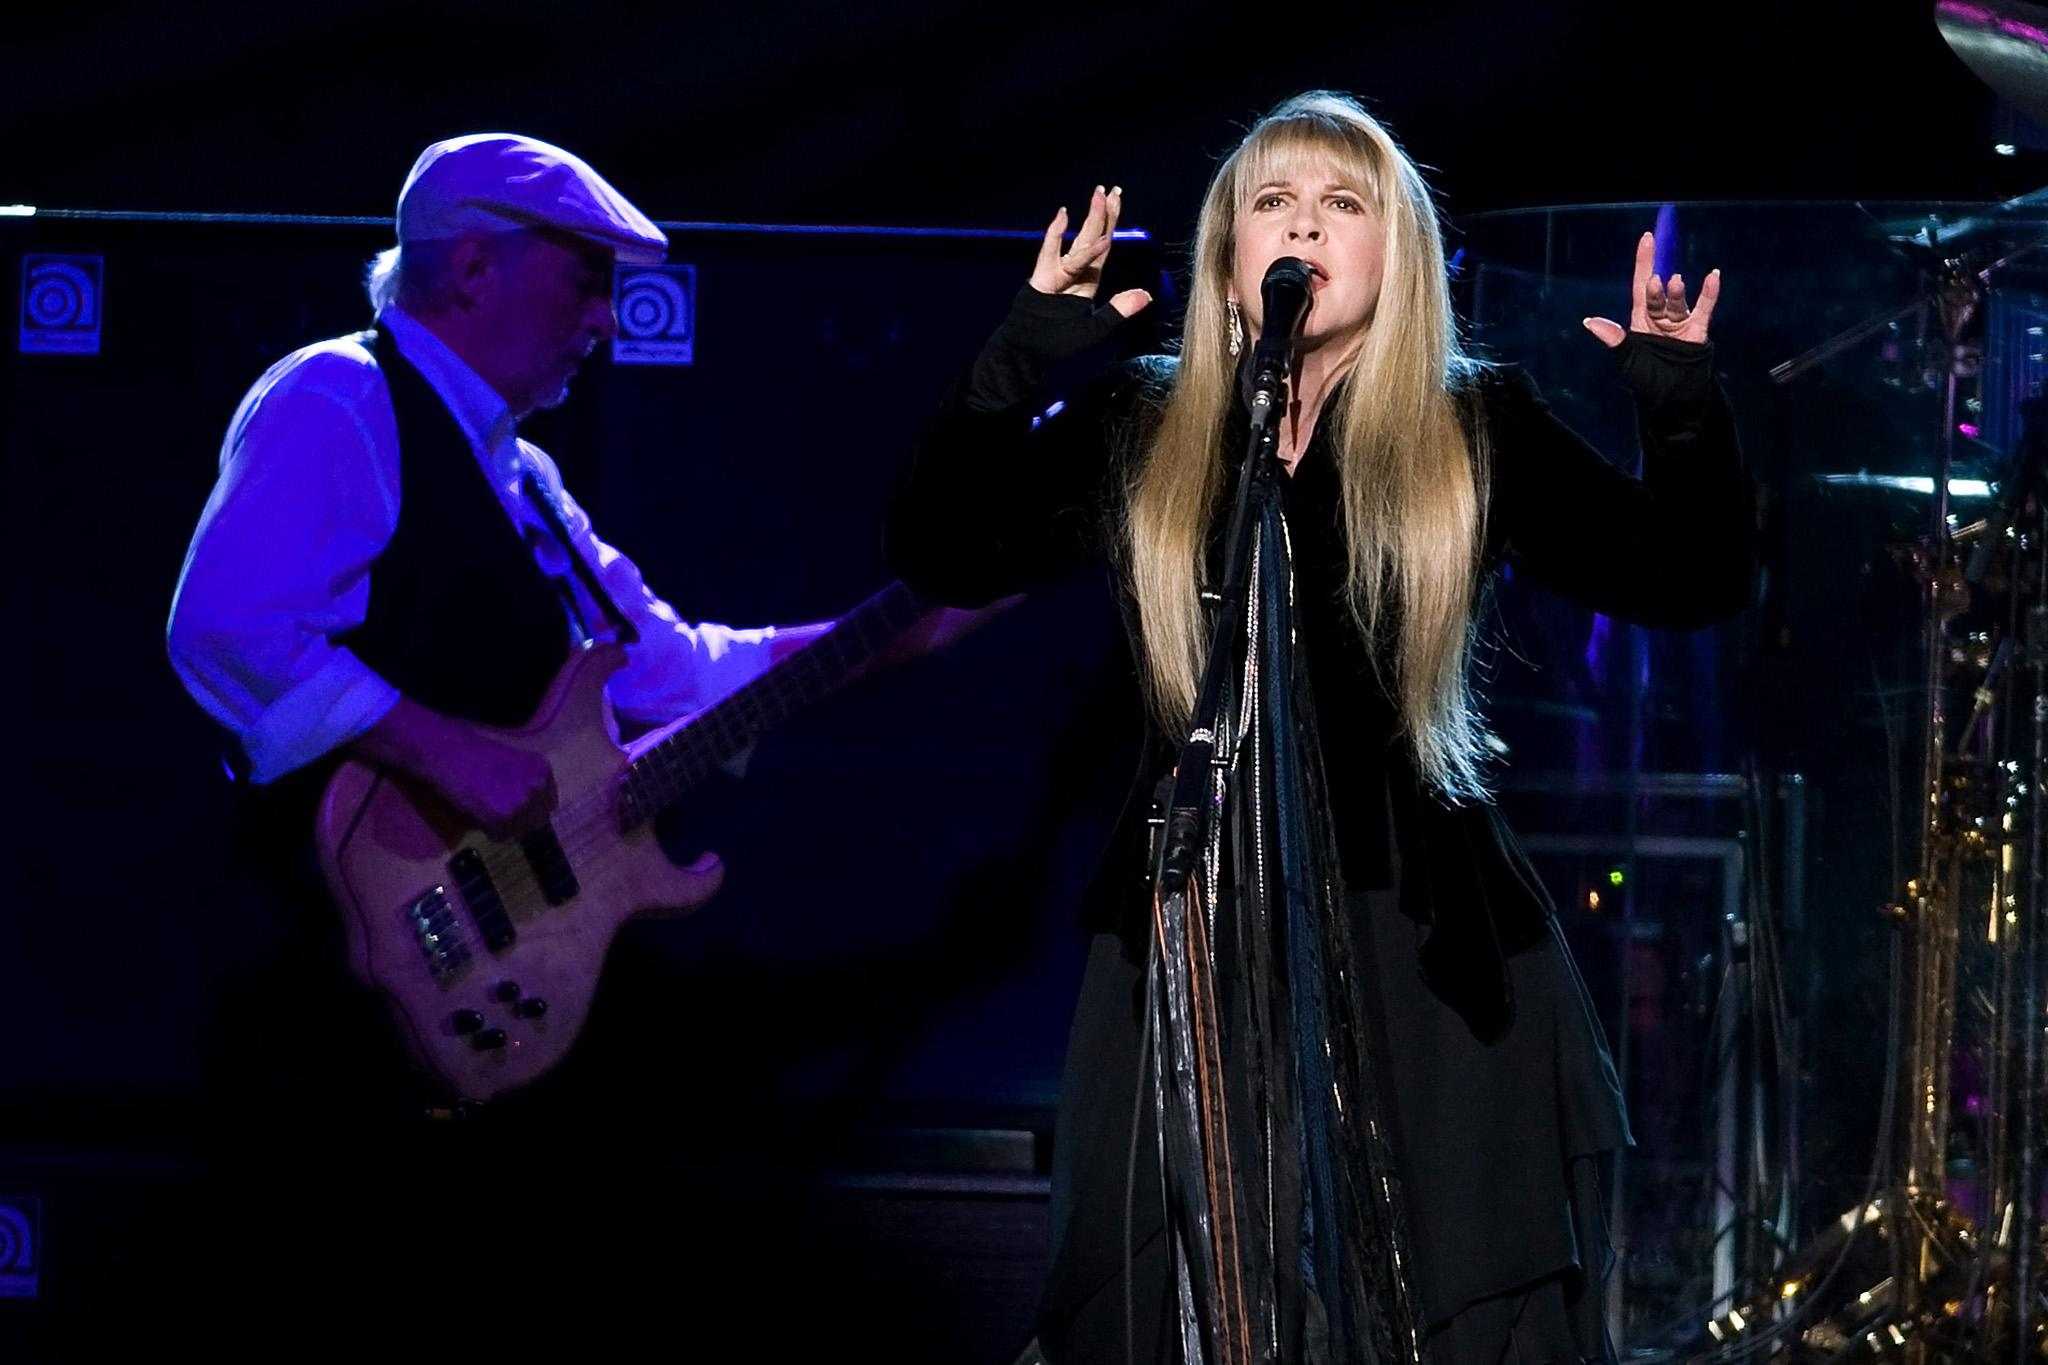 Fleetwood Mac are going on tour in 2019 – here's how to get tickets